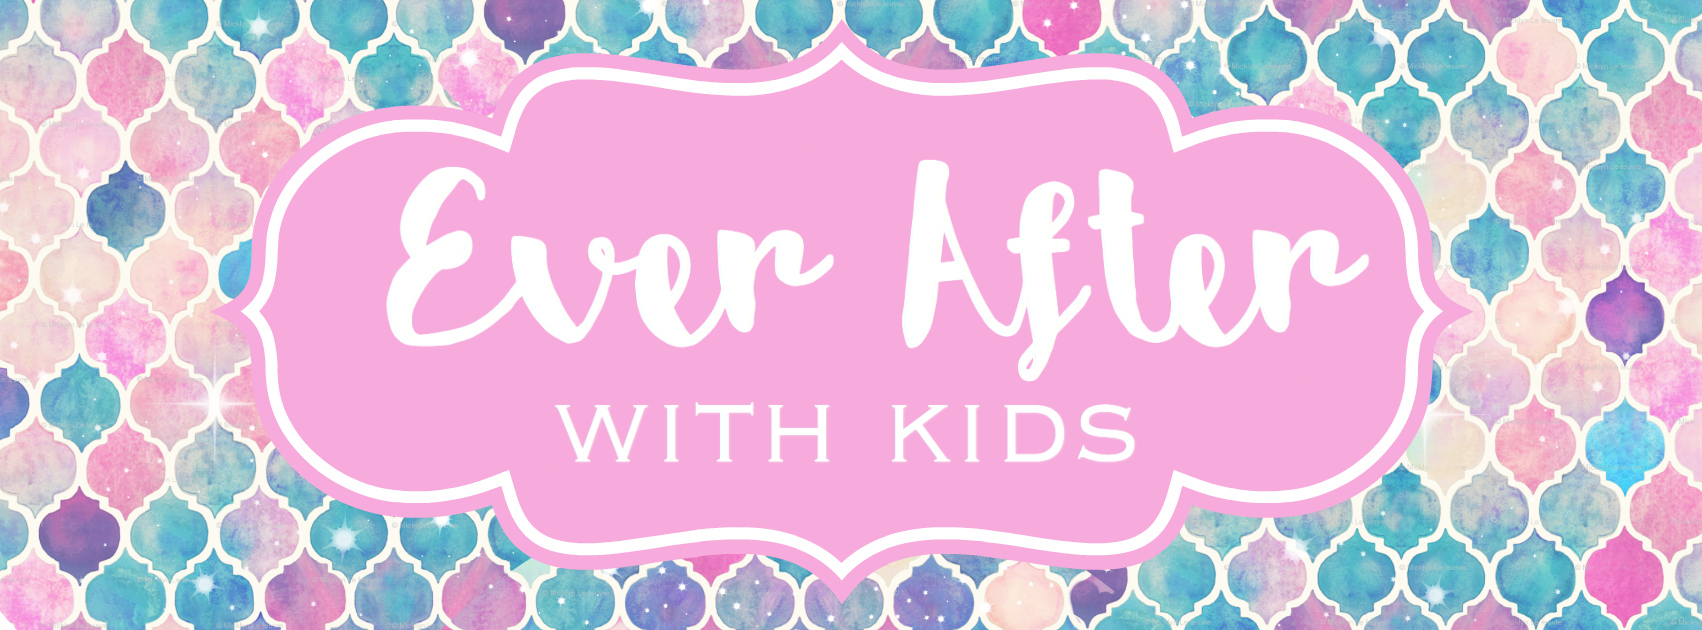 Ever After With Kids